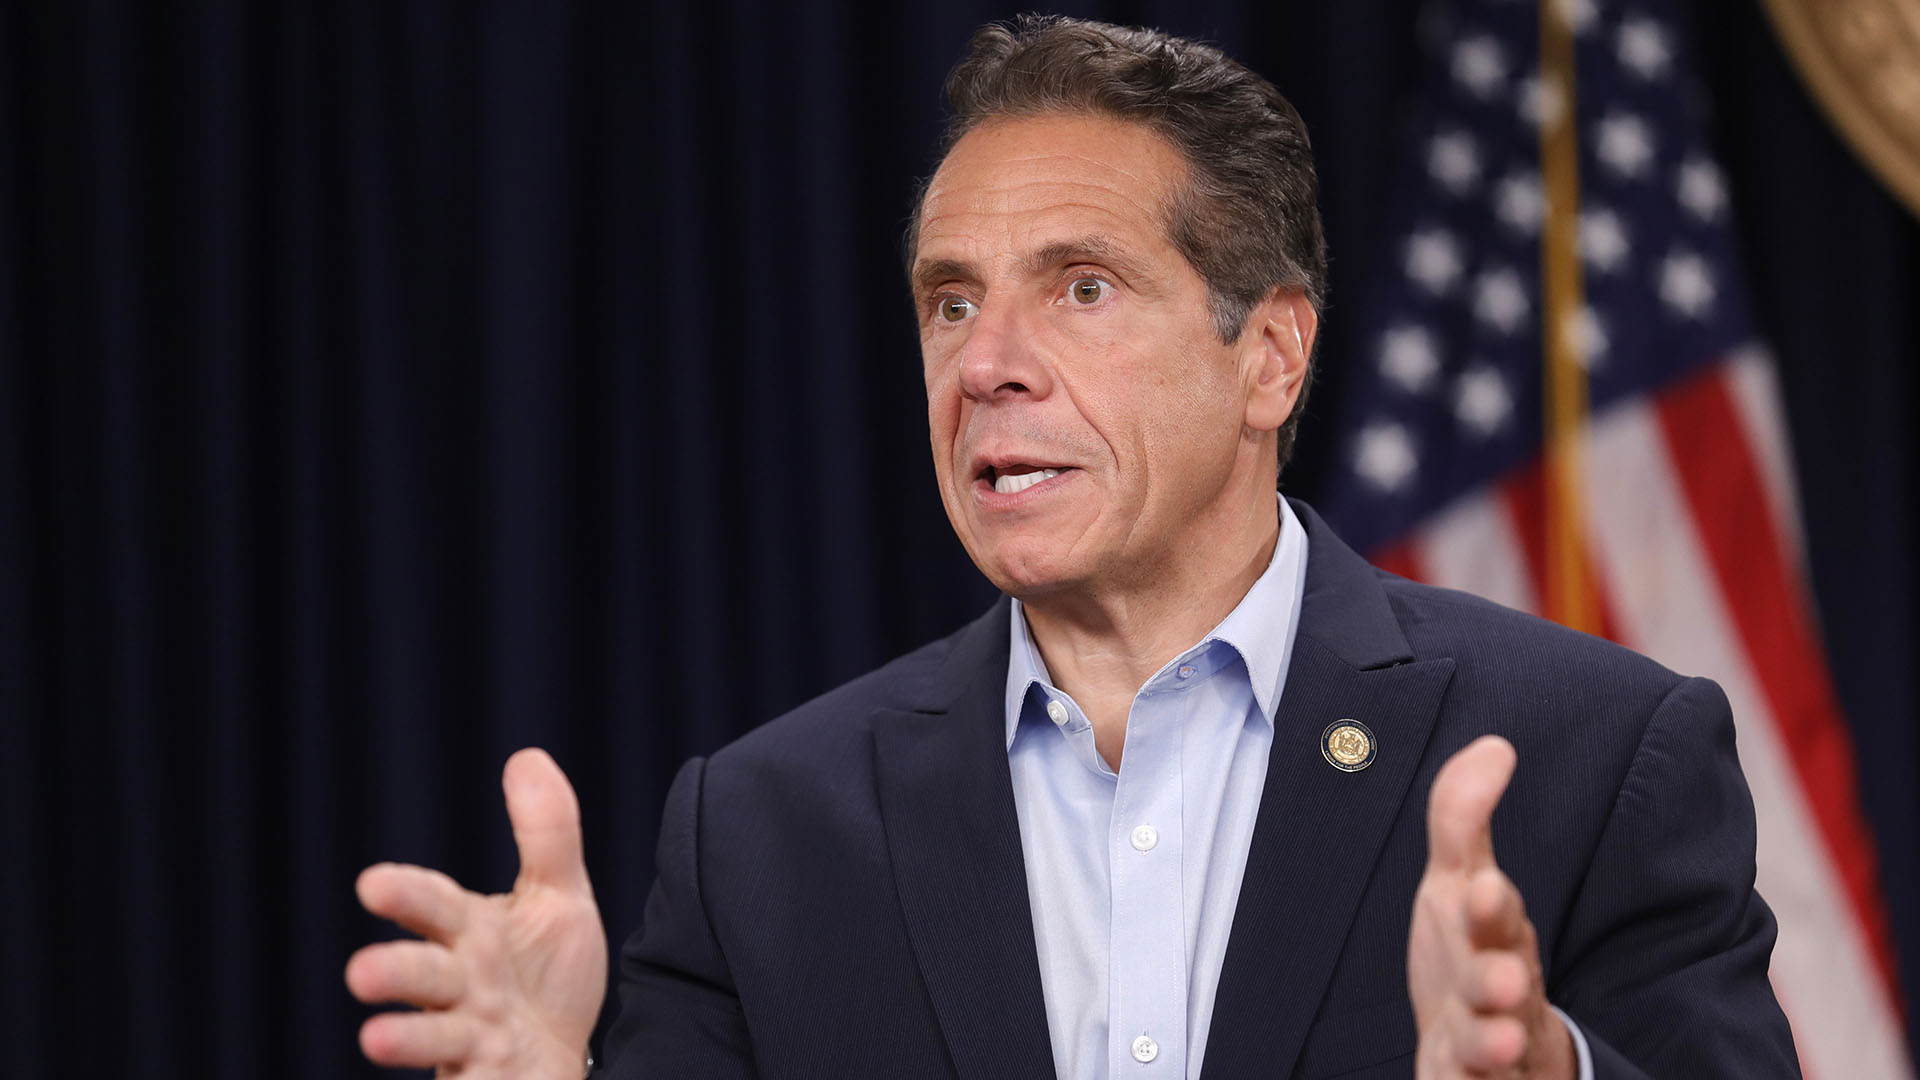 Gov. Cuomo signs new law restricting non-profits from endorsing candidates